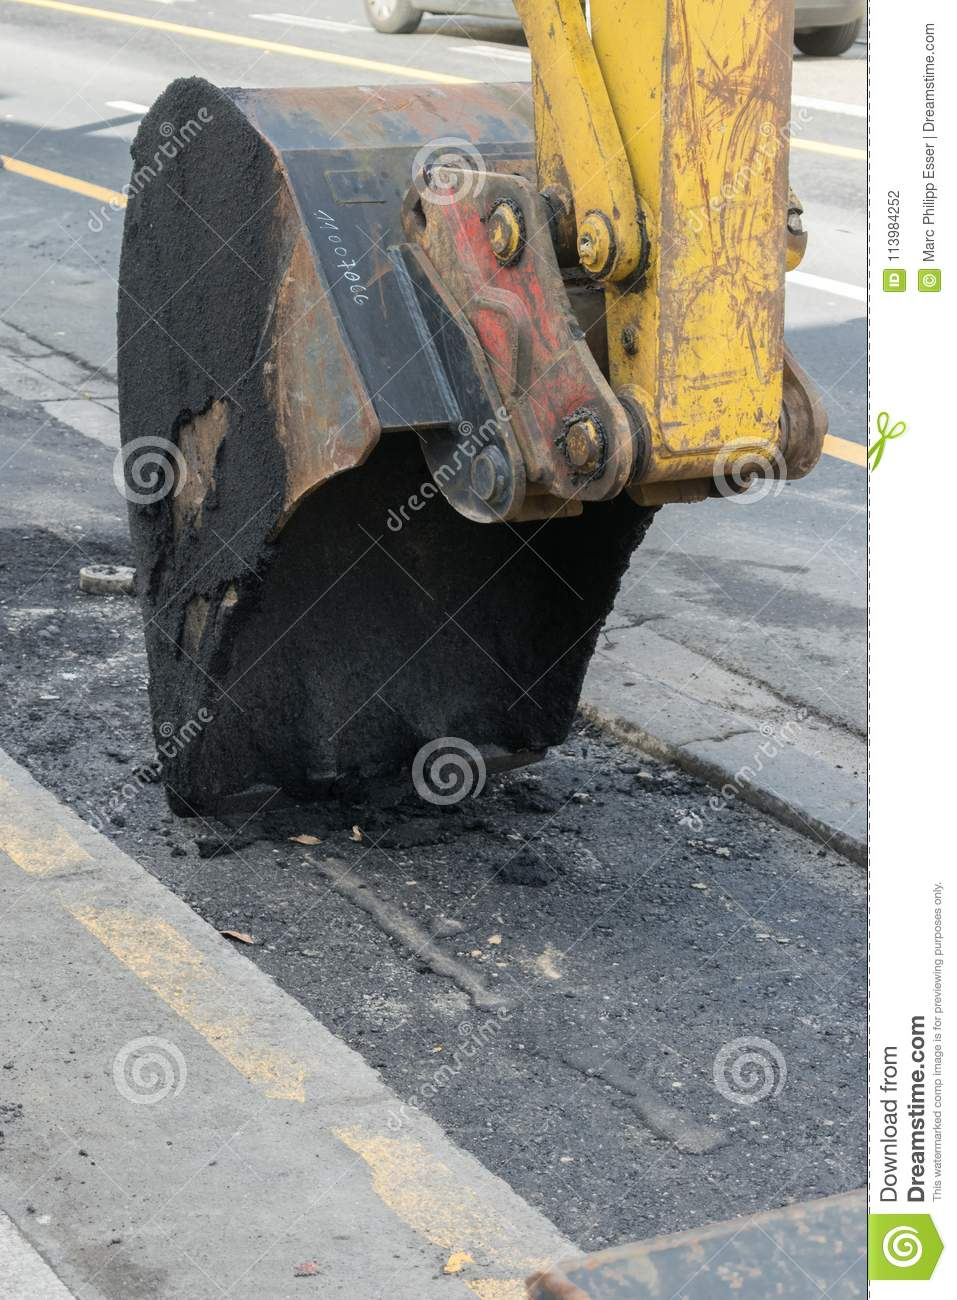 De Teer Asphalt Close Up Construction Roadwork van graafwerktuigshovel scratching tearing